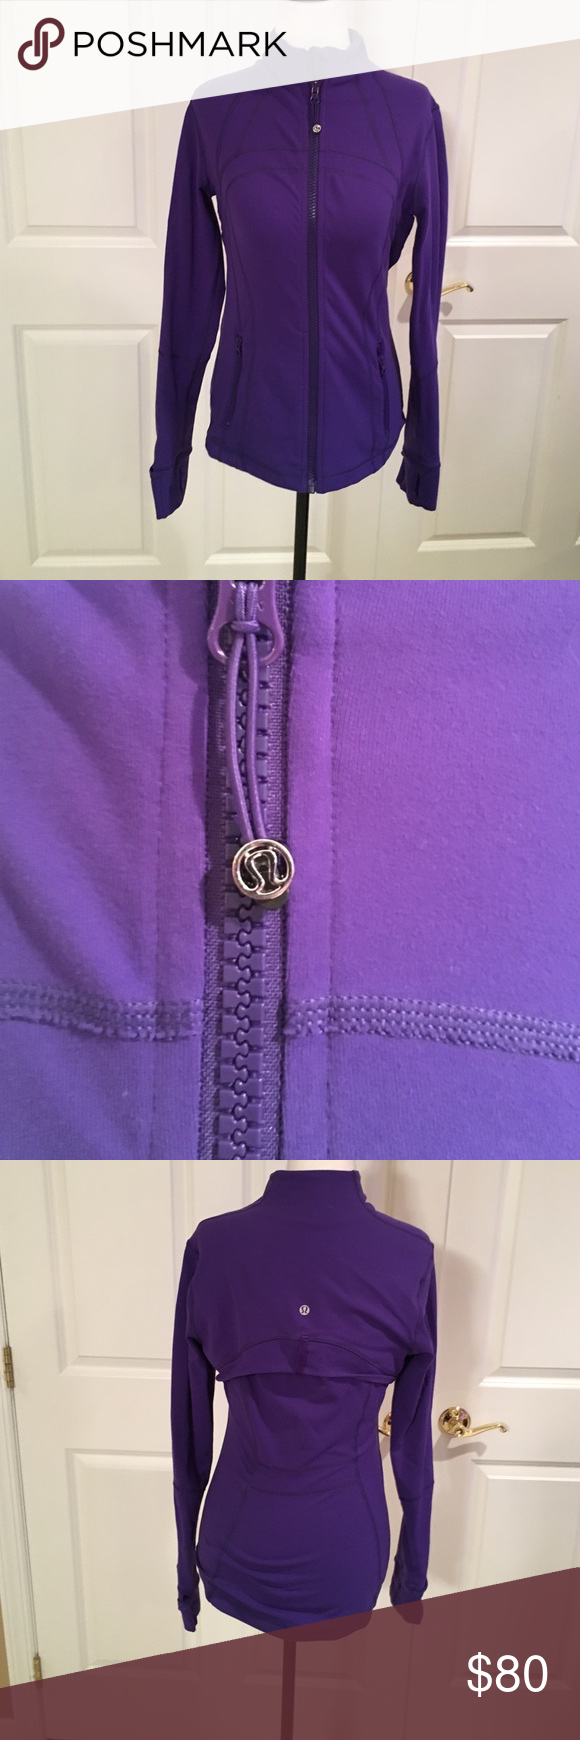 Lululemon purple forum jacket. Great condition. Only worn a few times. lululemon athletica Tops Sweatshirts & Hoodies